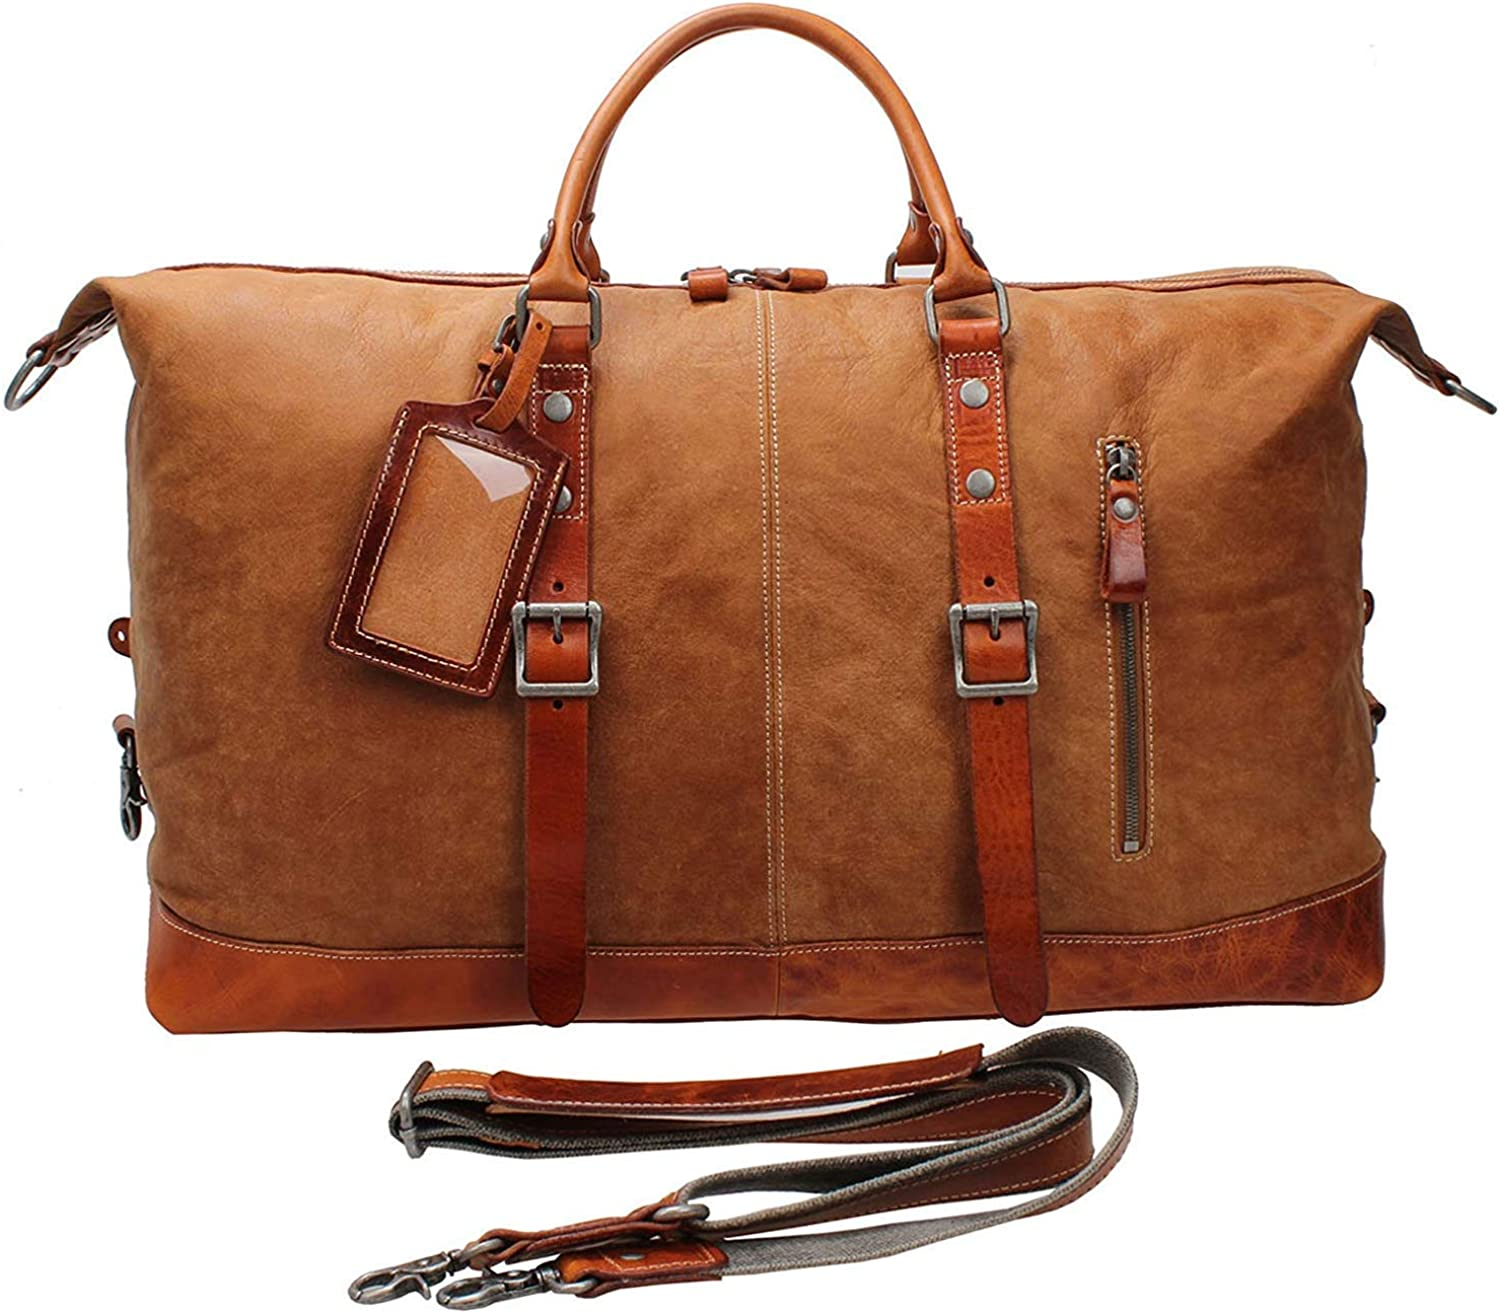 Iblueee Vintage Leather Duffle Overnight Travel Bag Sports Gym Tote B001